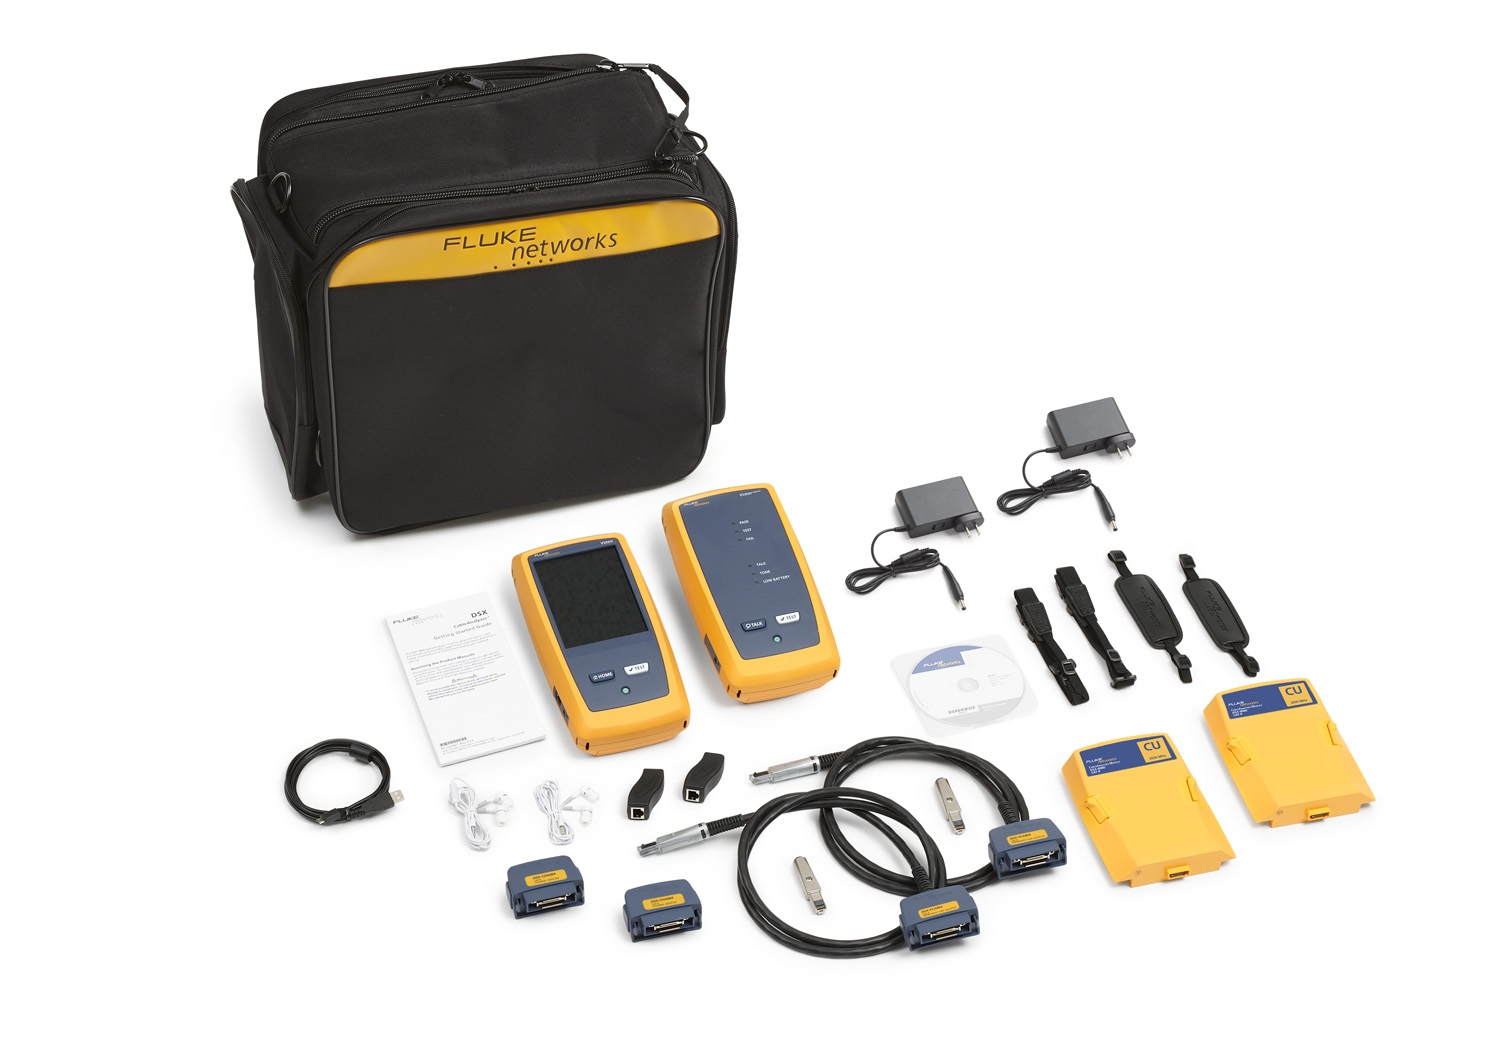 - 2 GHz DSX Cable Analyzer V2, with Wi-Fi